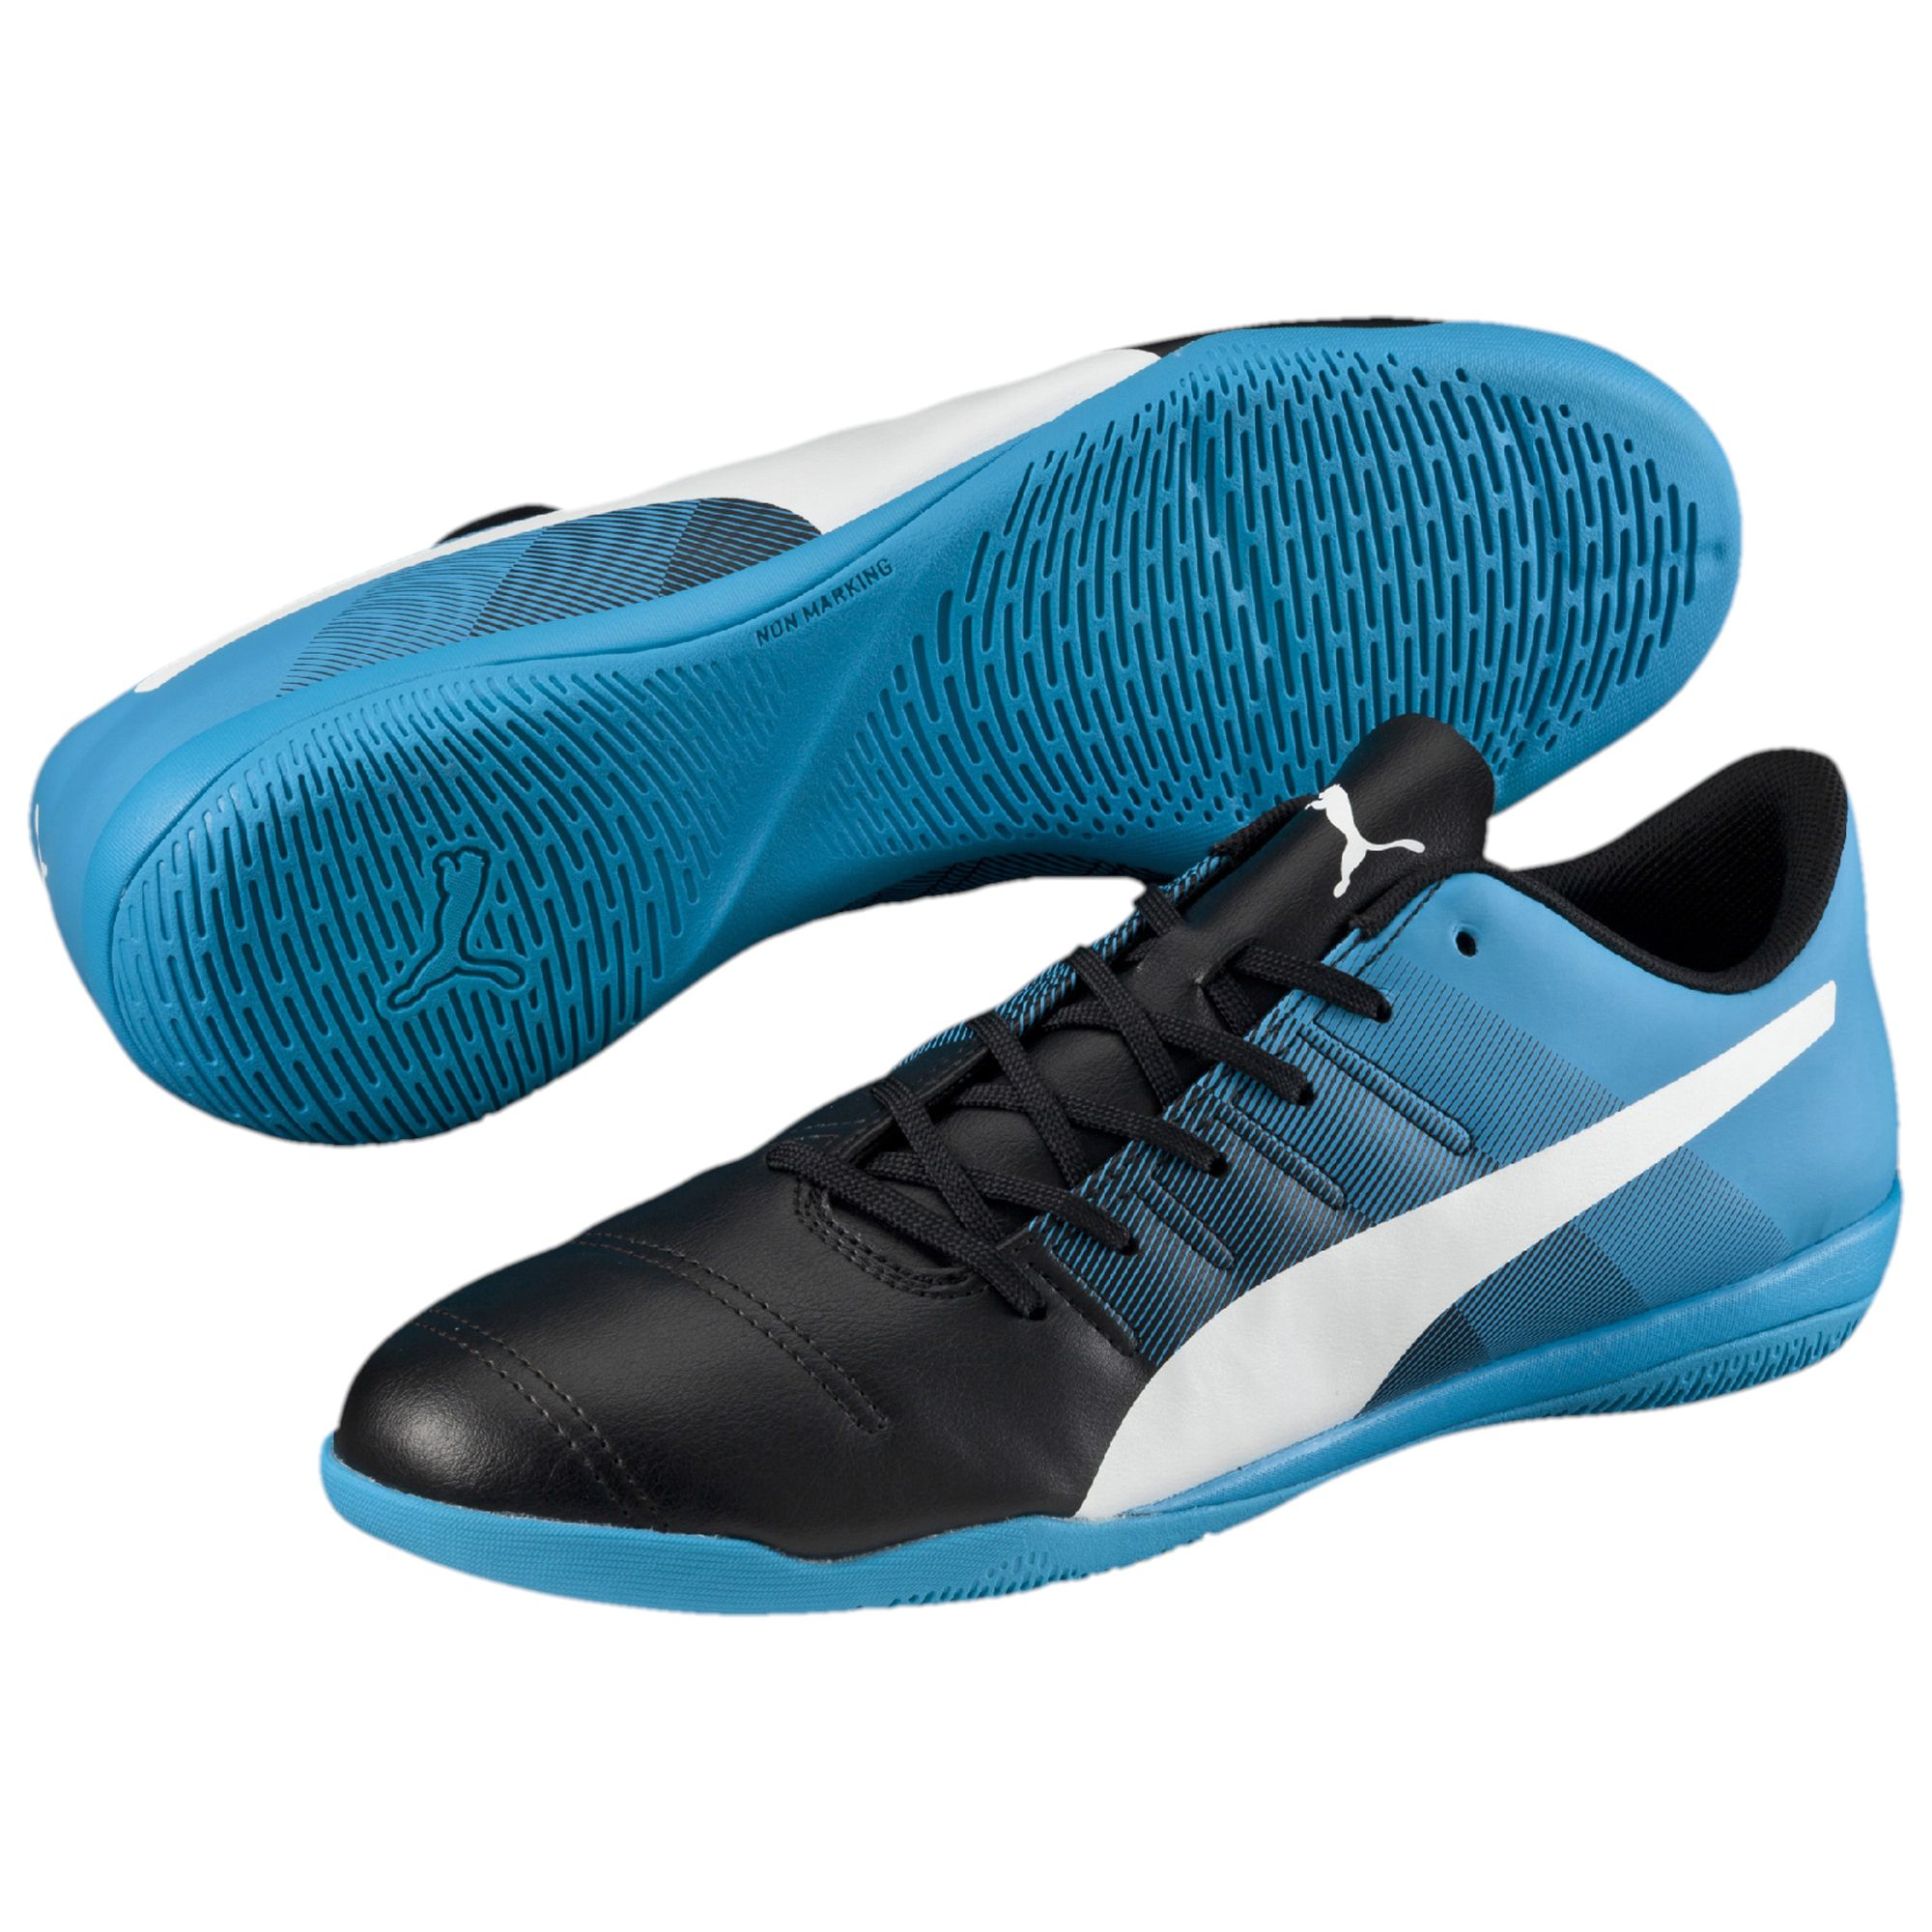 75bccf24d ... inexpensive lyst puma evopower 4.3 mens indoor soccer shoes in pink for  men 53634 14a6b